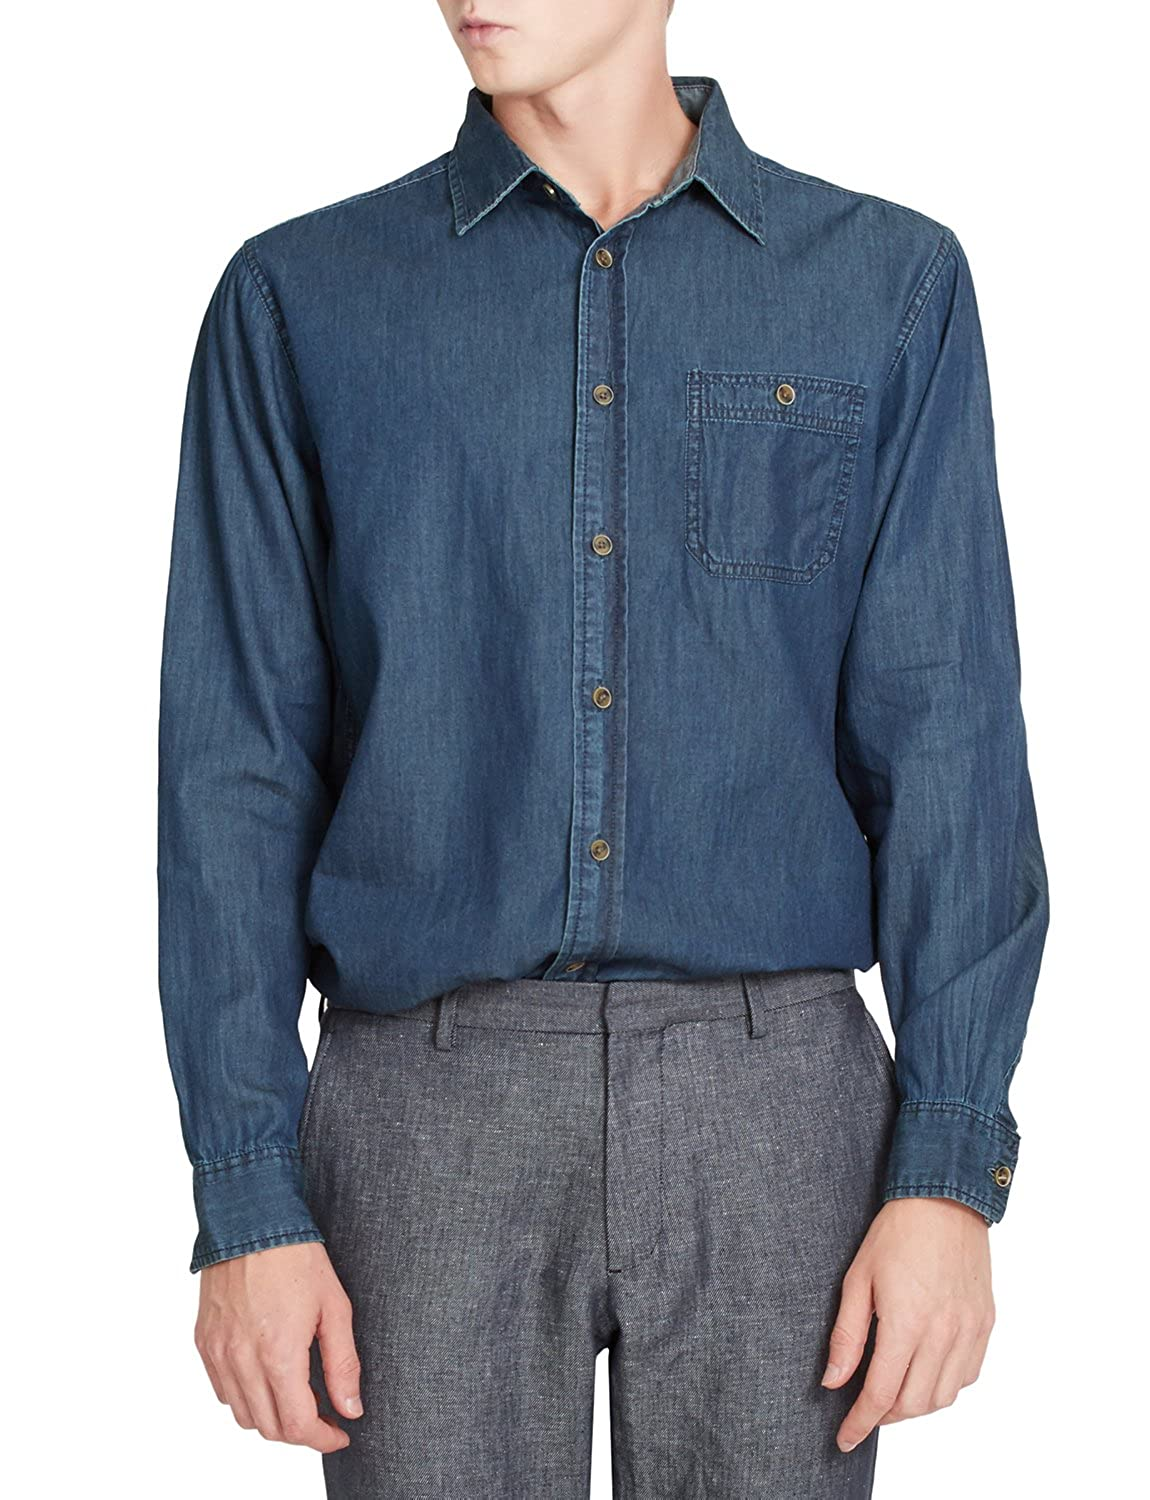 1940s Men's Suit History and Styling Tips LE3NO PREMIUM Mens Vintage Long Sleeve Button Down Work Denim Shirt $43.54 AT vintagedancer.com